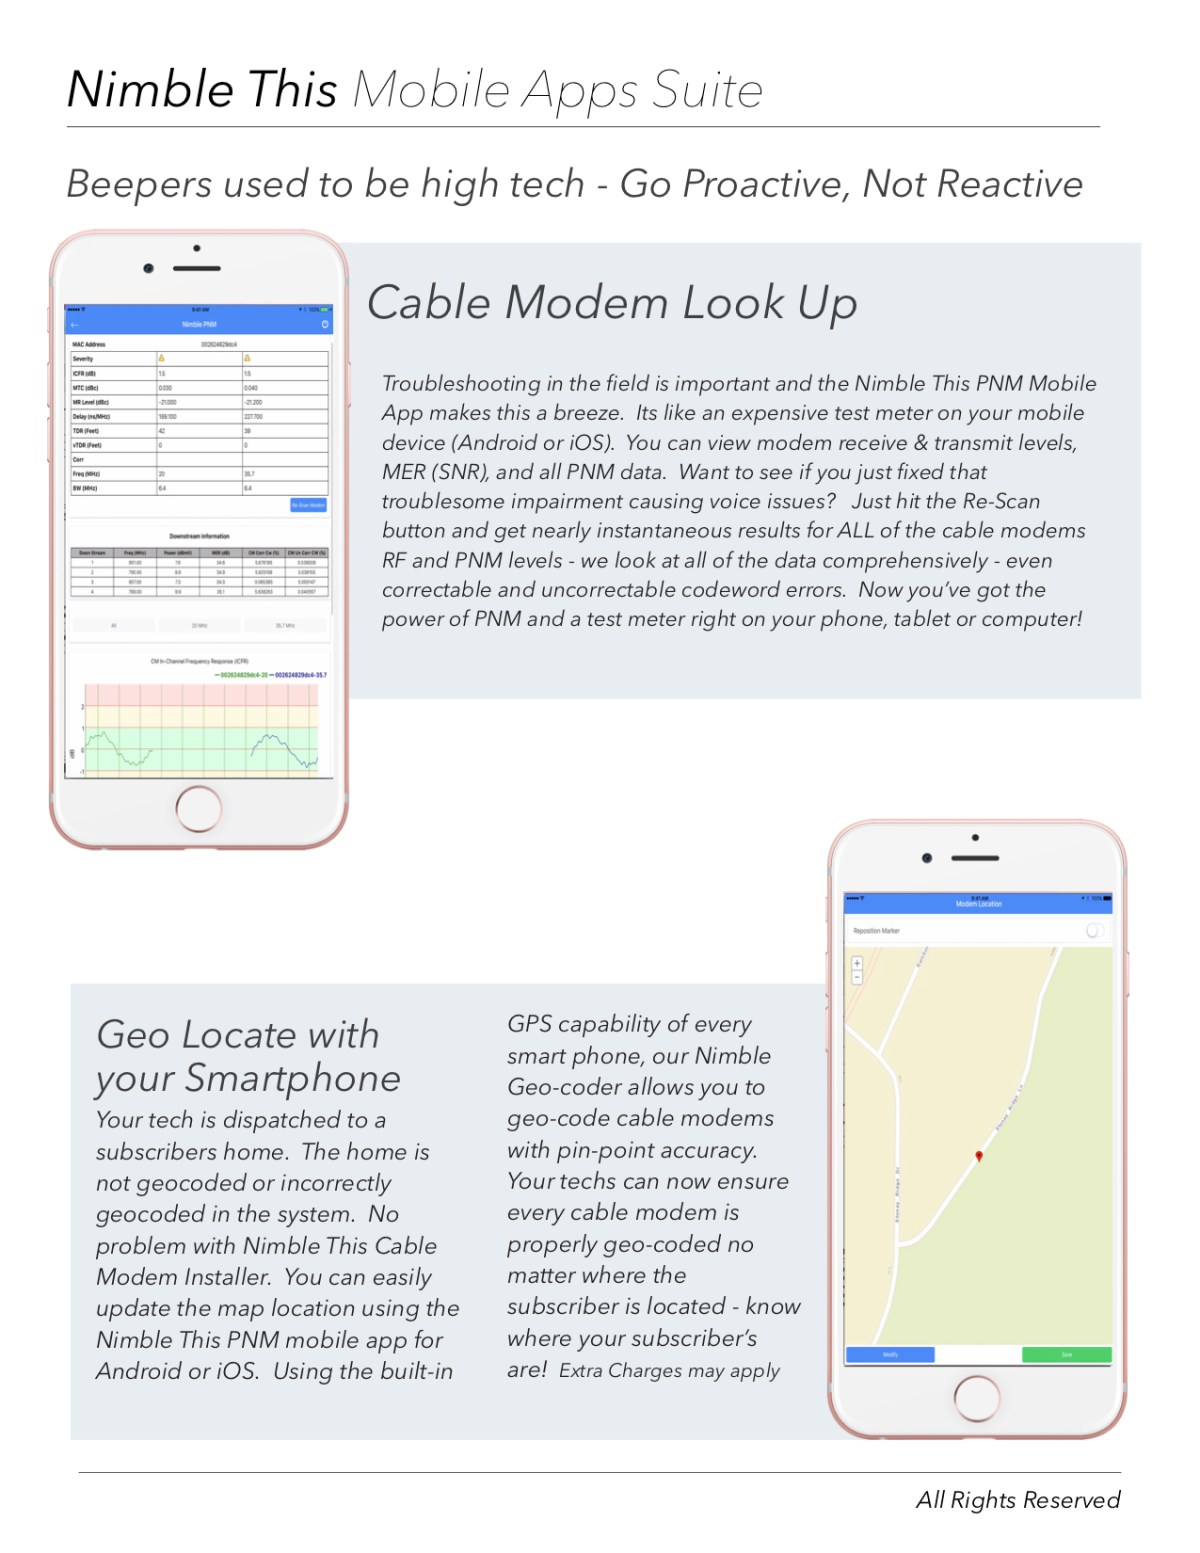 PNM Geo Locate with your smartphone   geo-code cable modems